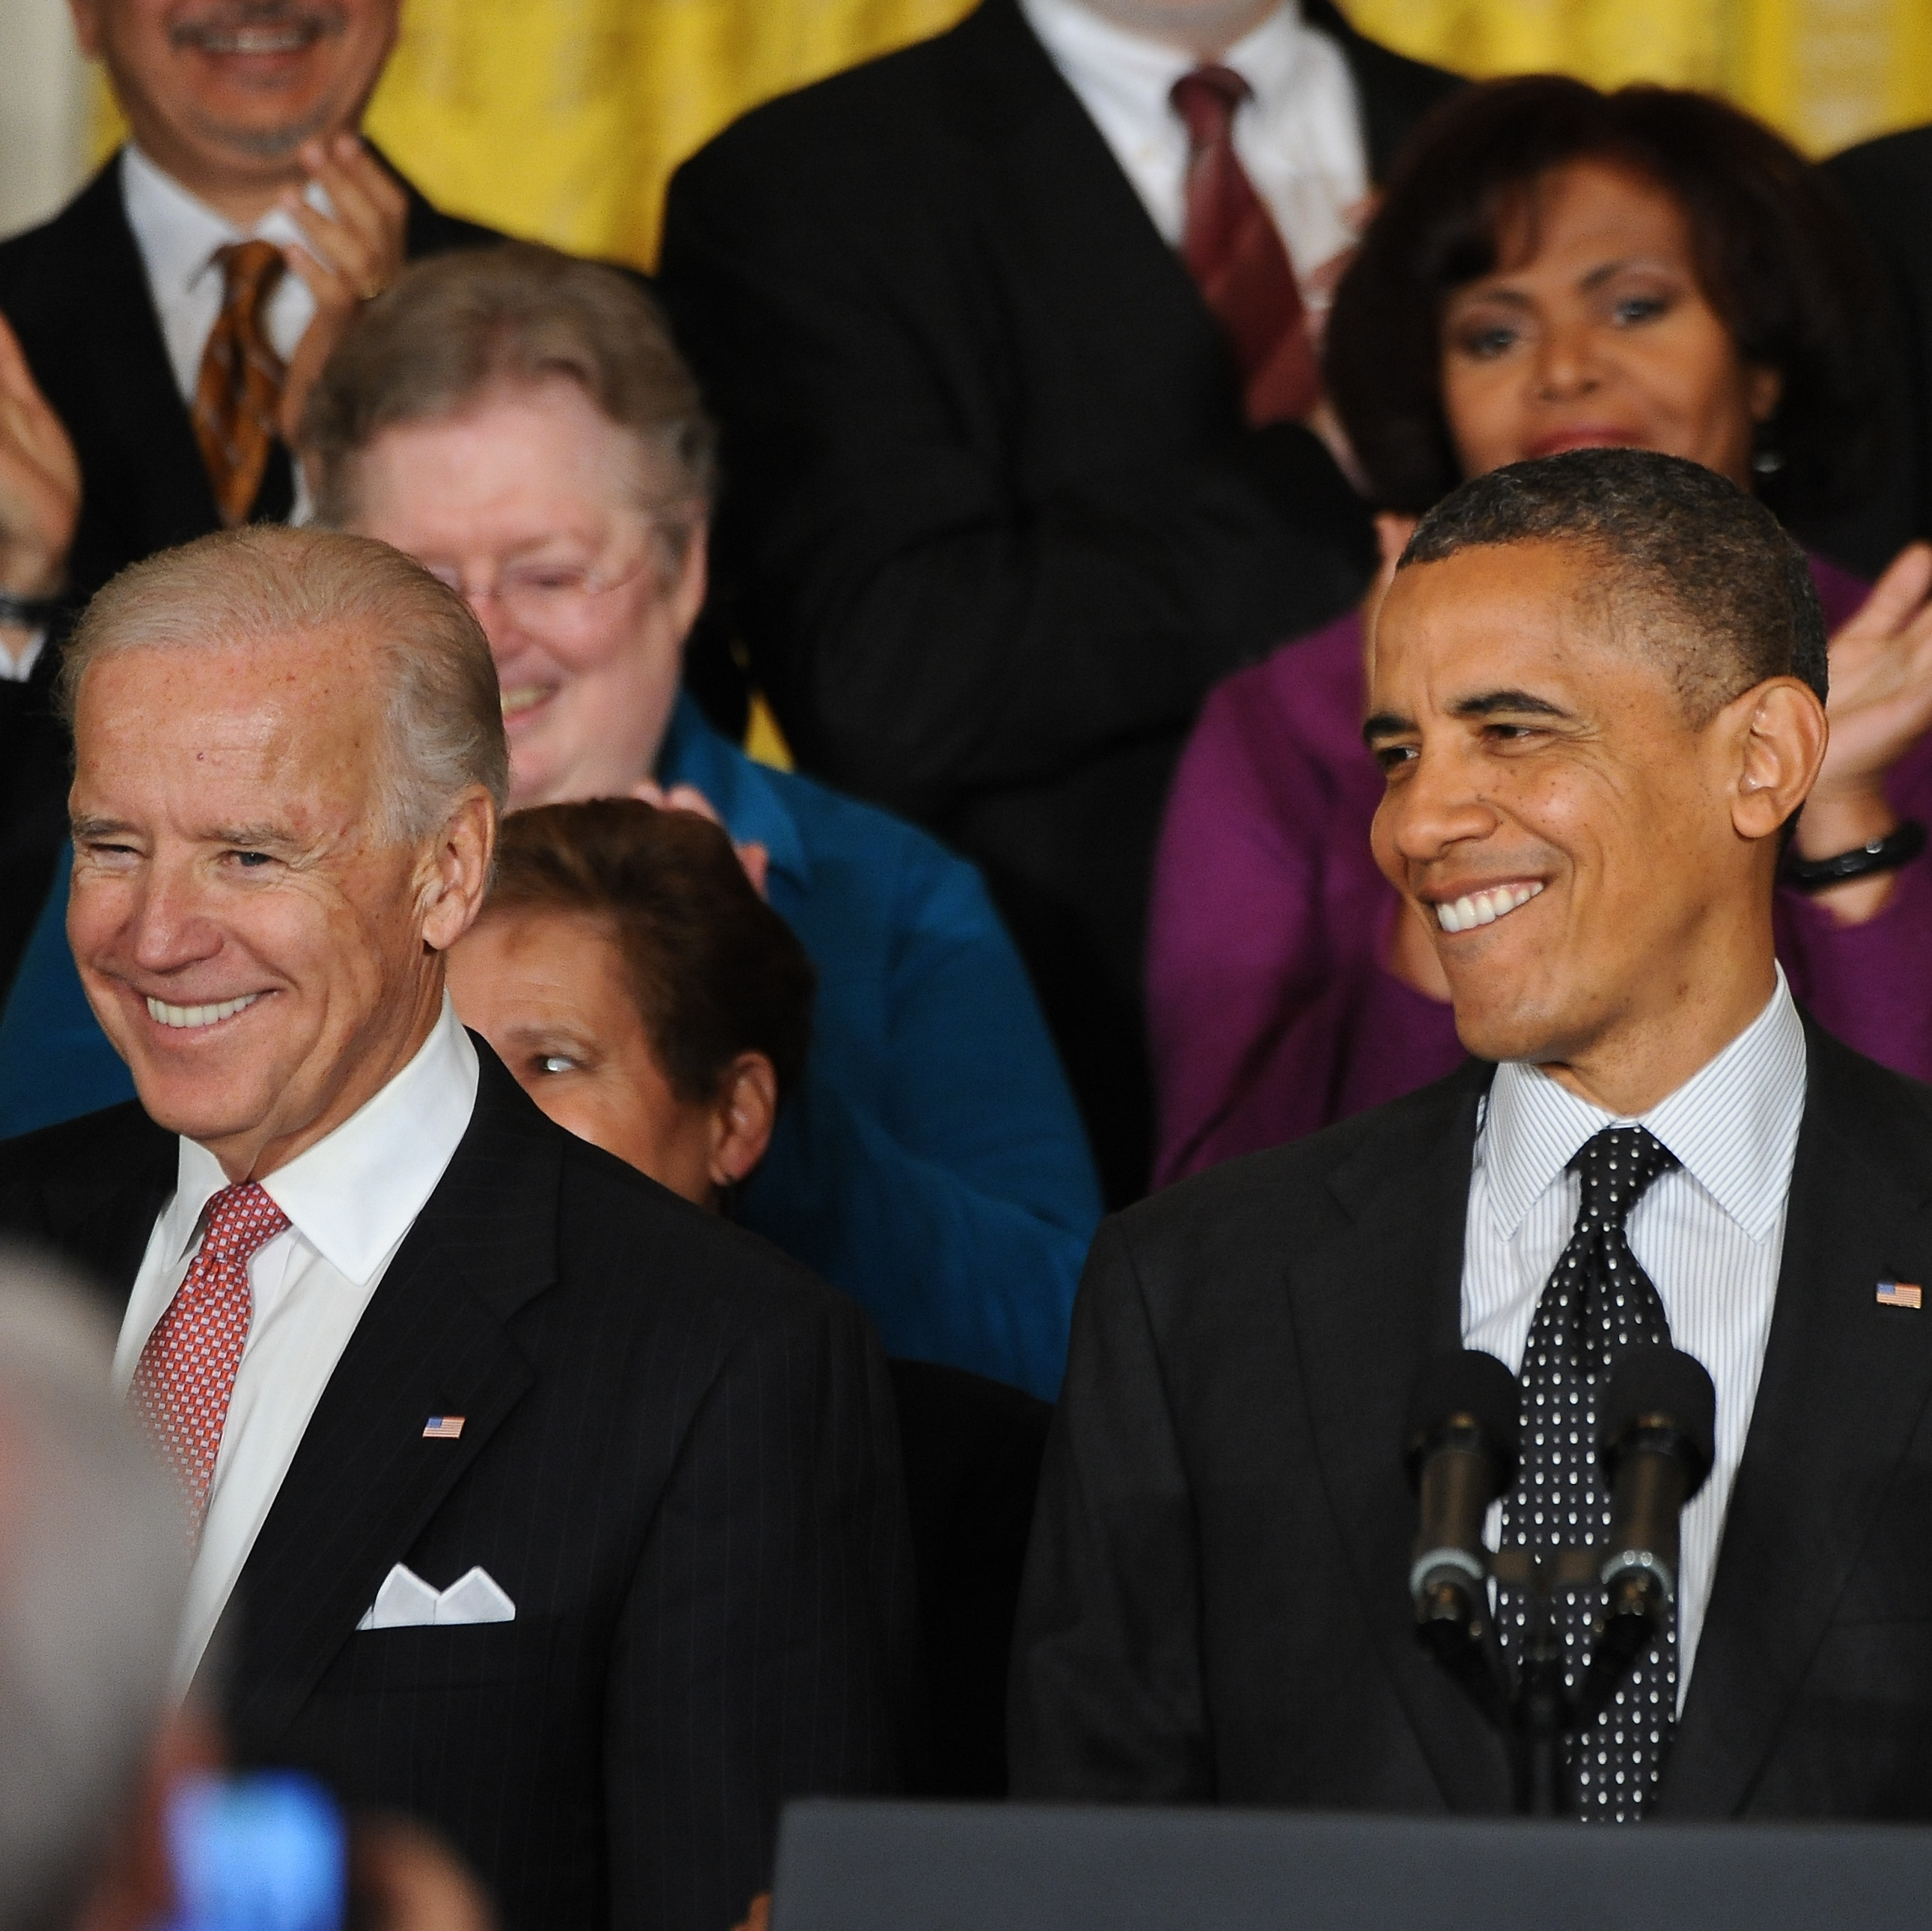 President Obama and Vice President Biden as they were welcomed at the White House this afternoon.